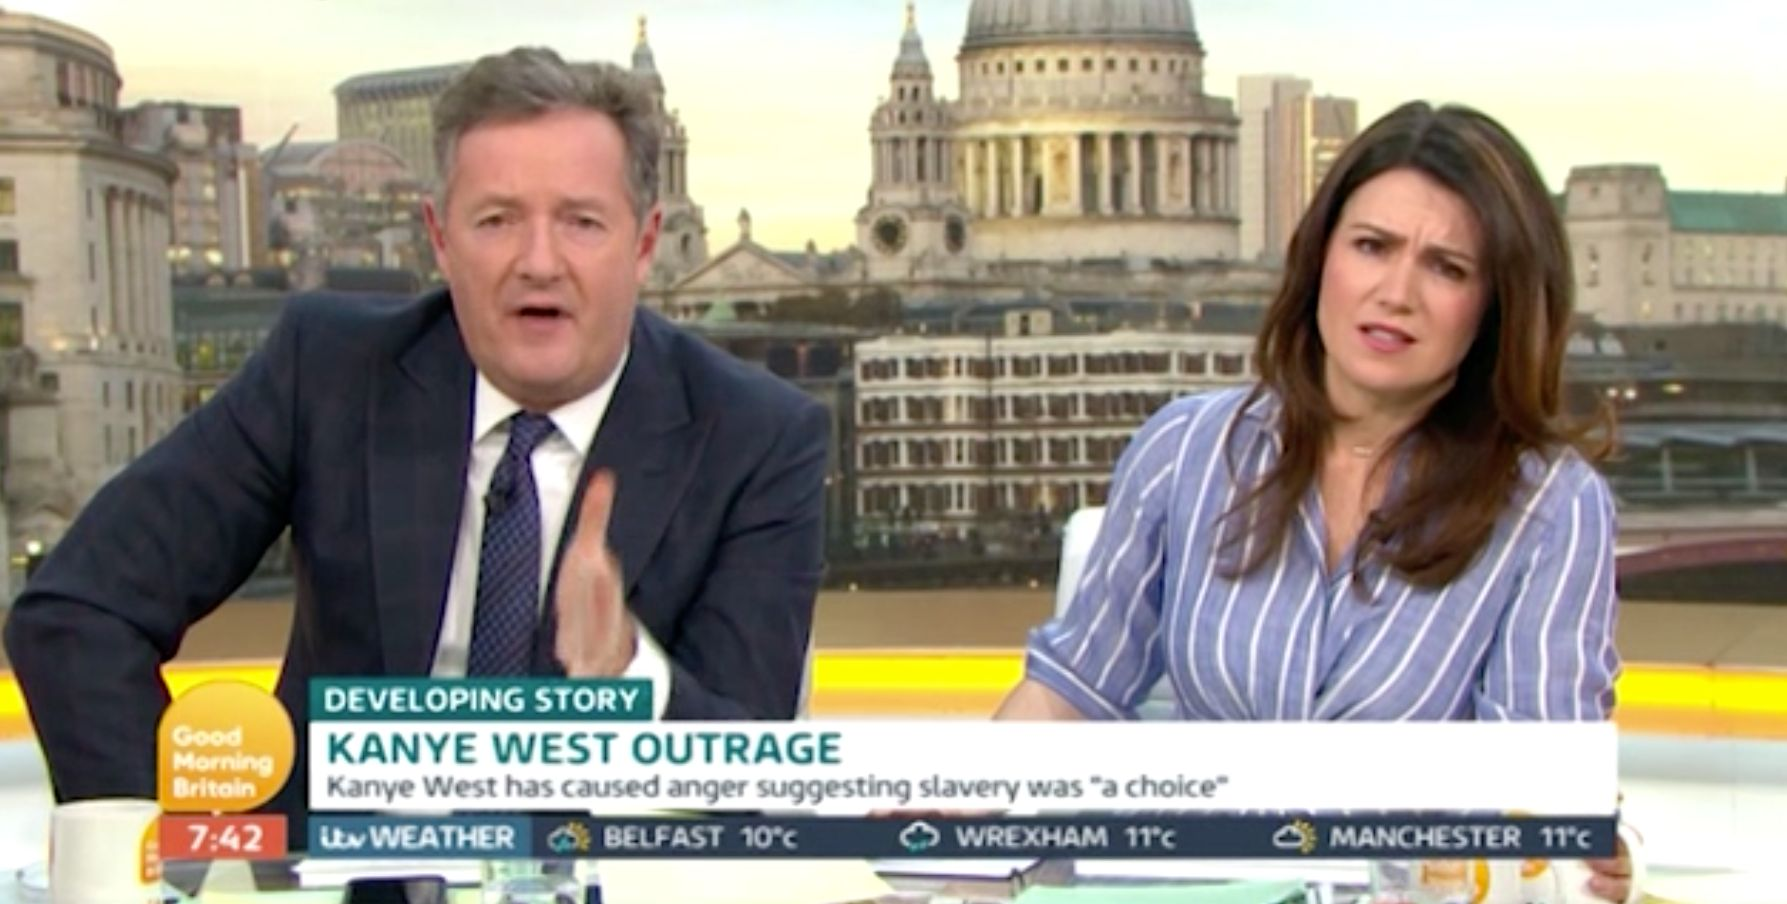 'Good Morning Britain' Cuts Guest's Microphone After Racism Debate Descends Into 'Vile